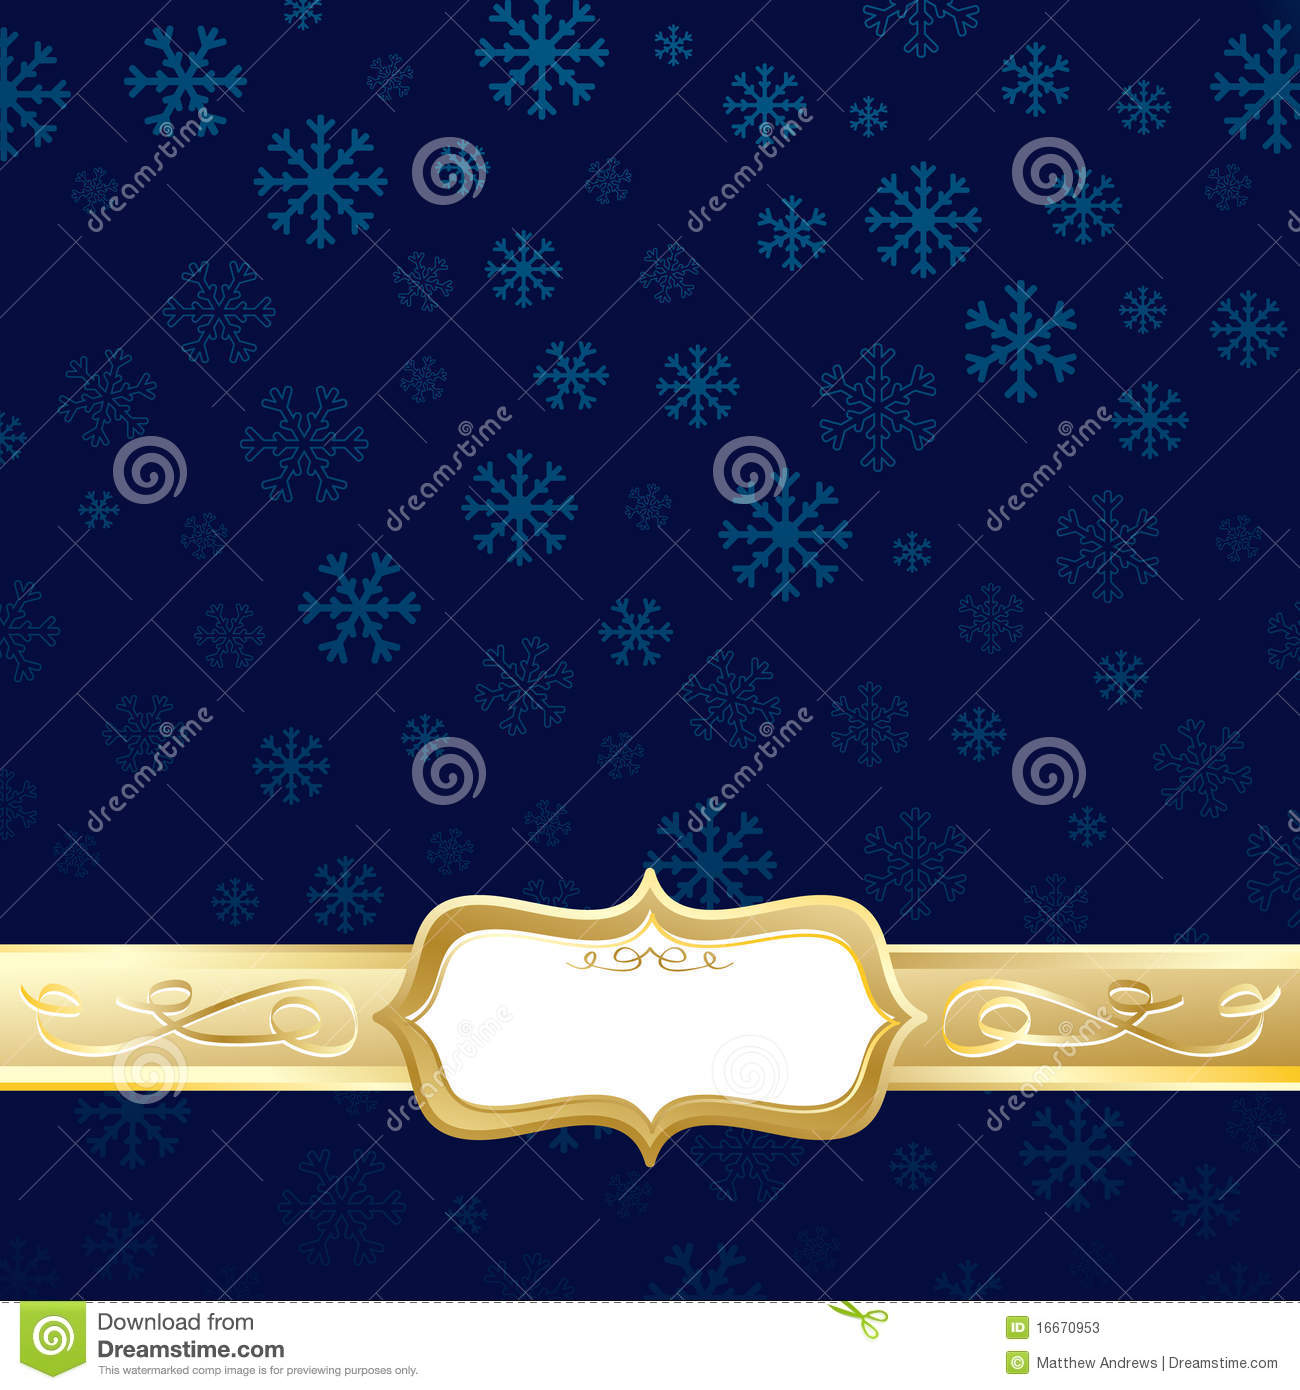 Blue and gold christmas stock photos image 16670953 for Blue and gold christmas